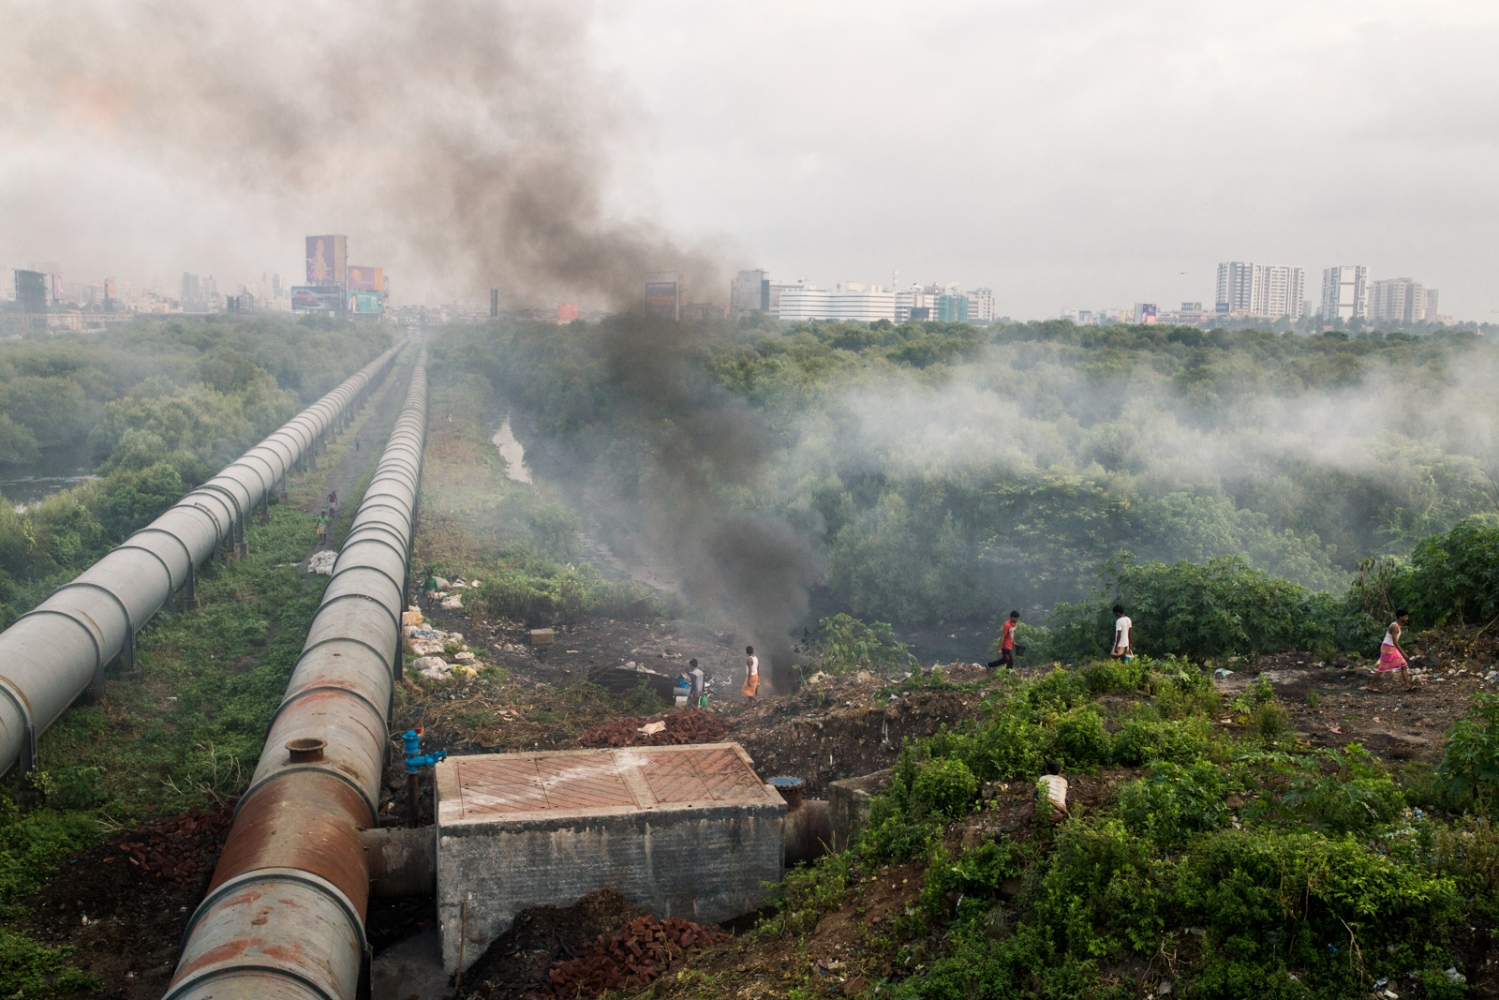 Burning trash piles, Mumbai, India. Roughly 40% of the globe's waste is dealt by with uncontrolled fires nearby population centers. The majority of burning garbage is made up of organic matter, which when burnt releases carbon dioxide. However, additional materials burning include plastics and other synthetics, when burnt, release pollutants such as mercury and polycyclic aromatic hydrocarbons (PAHs), which are known to cause cancer and other health concerns.